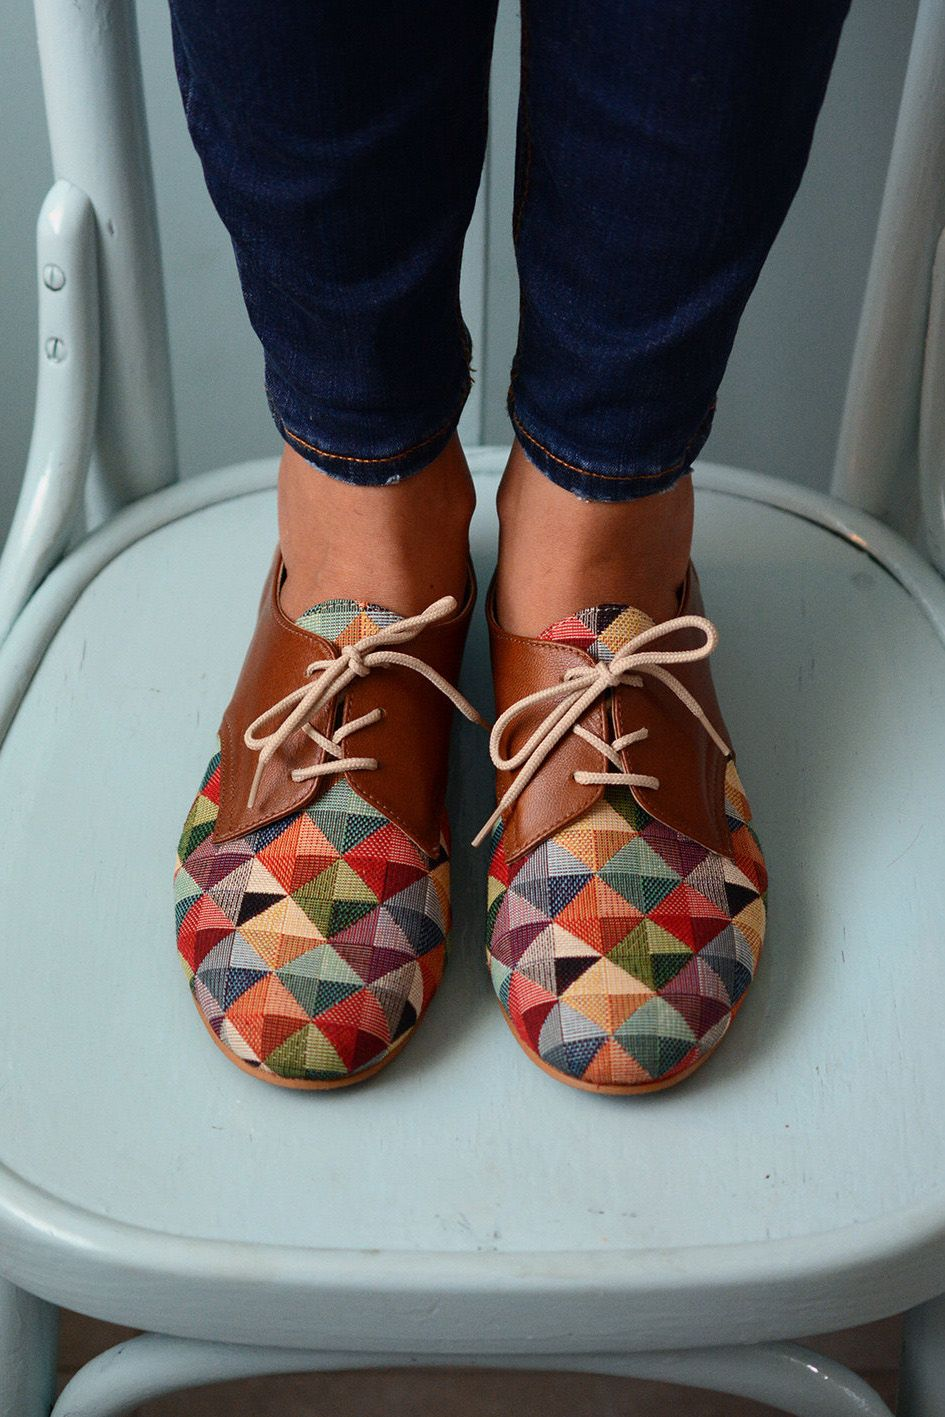 ... flat Shoes-Women Source. Step up your shoe game with these colorful  oxfords. 56f8fad487e2